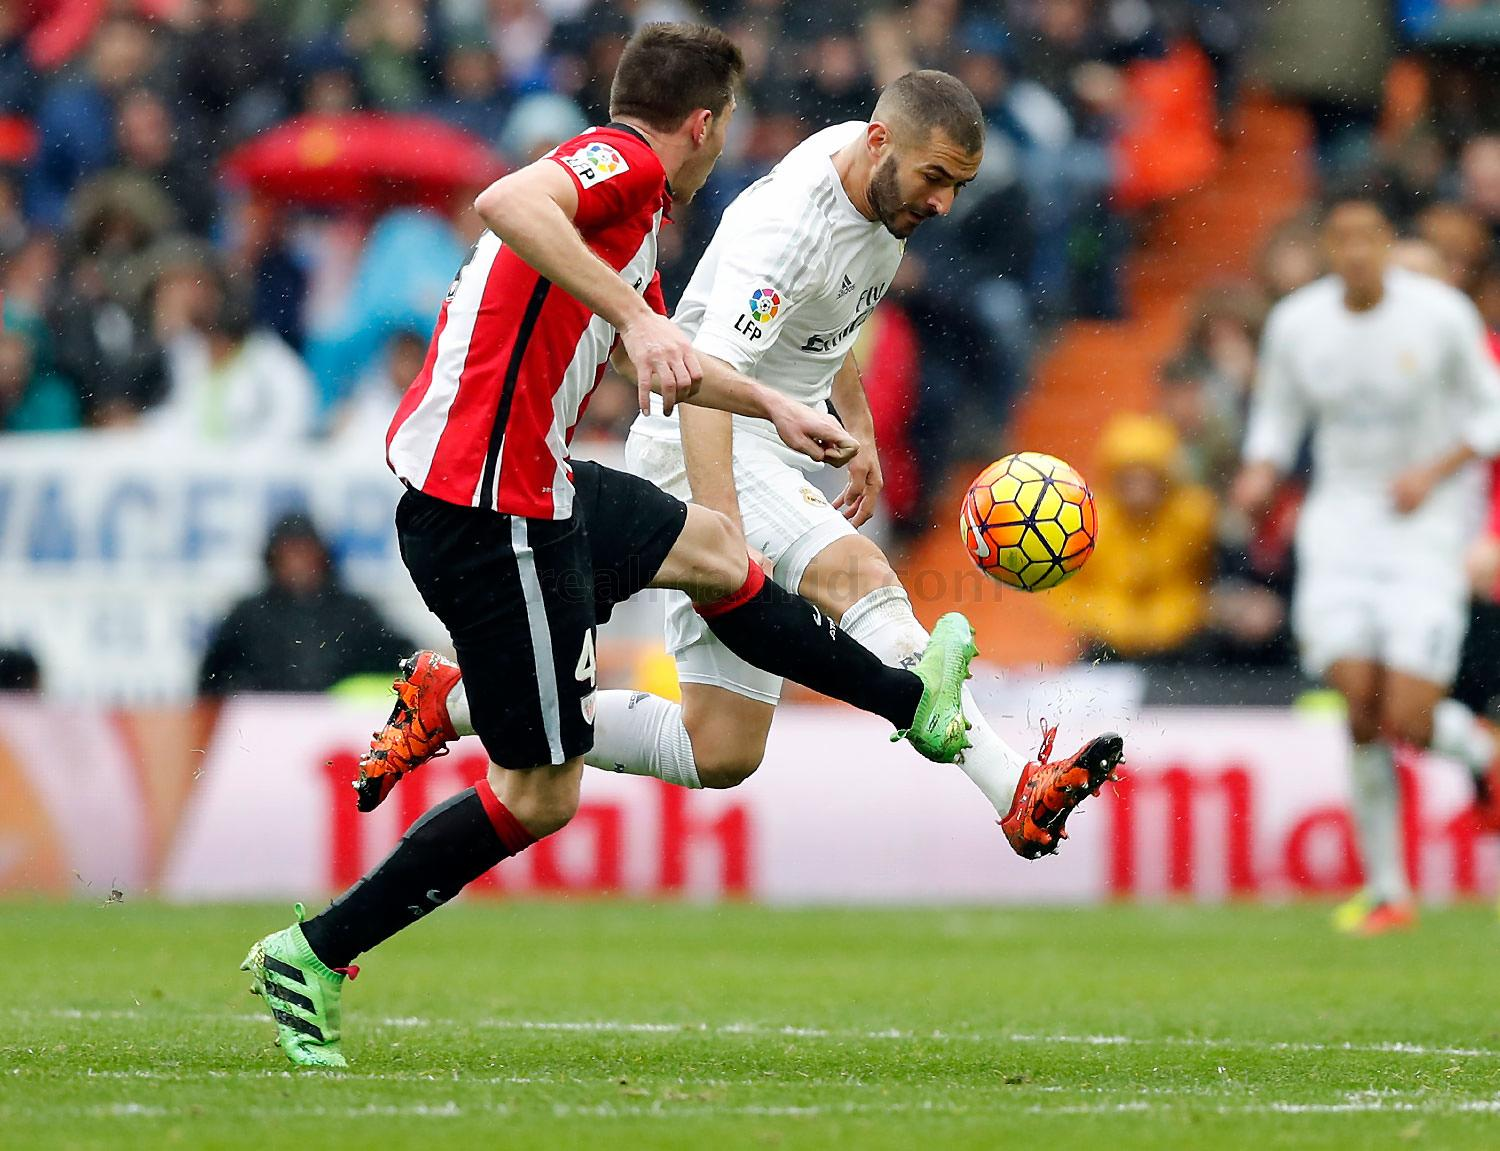 Real Madrid - Real Madrid - Athletic Club - 13-02-2016